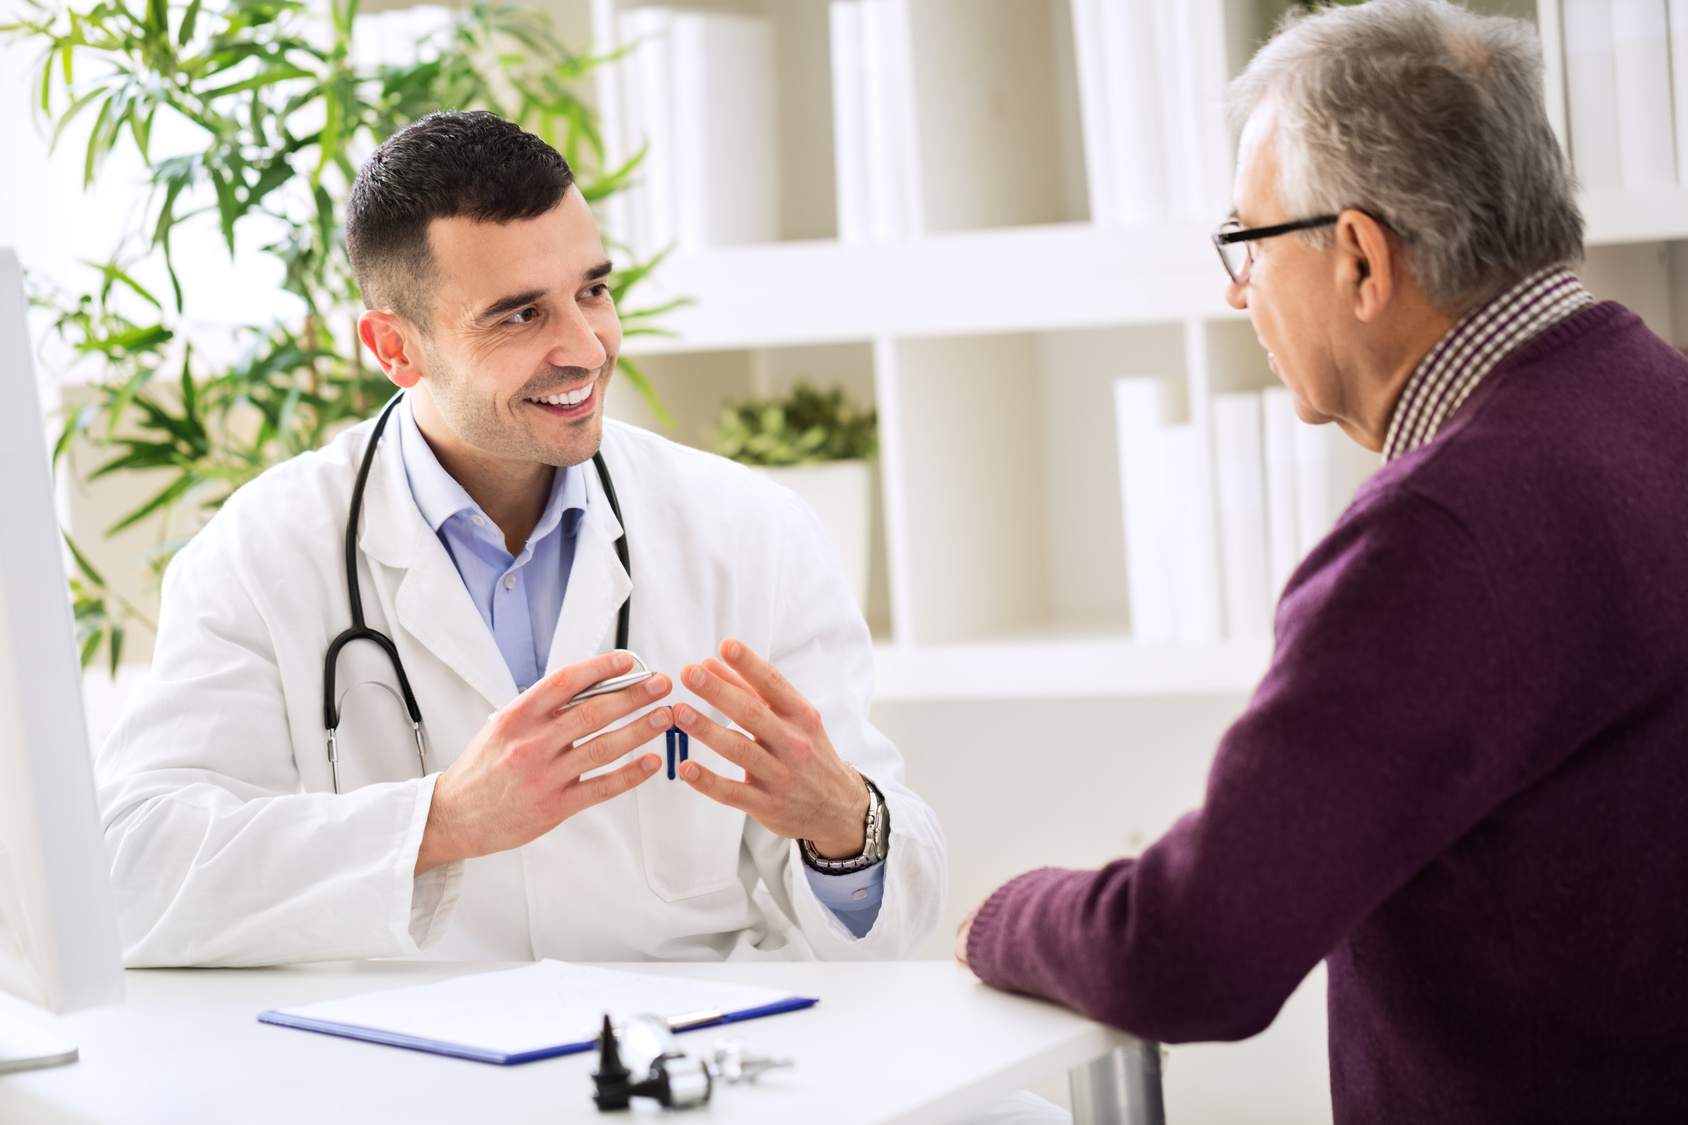 What Are Seniors Looking for in a Healthcare Provider?